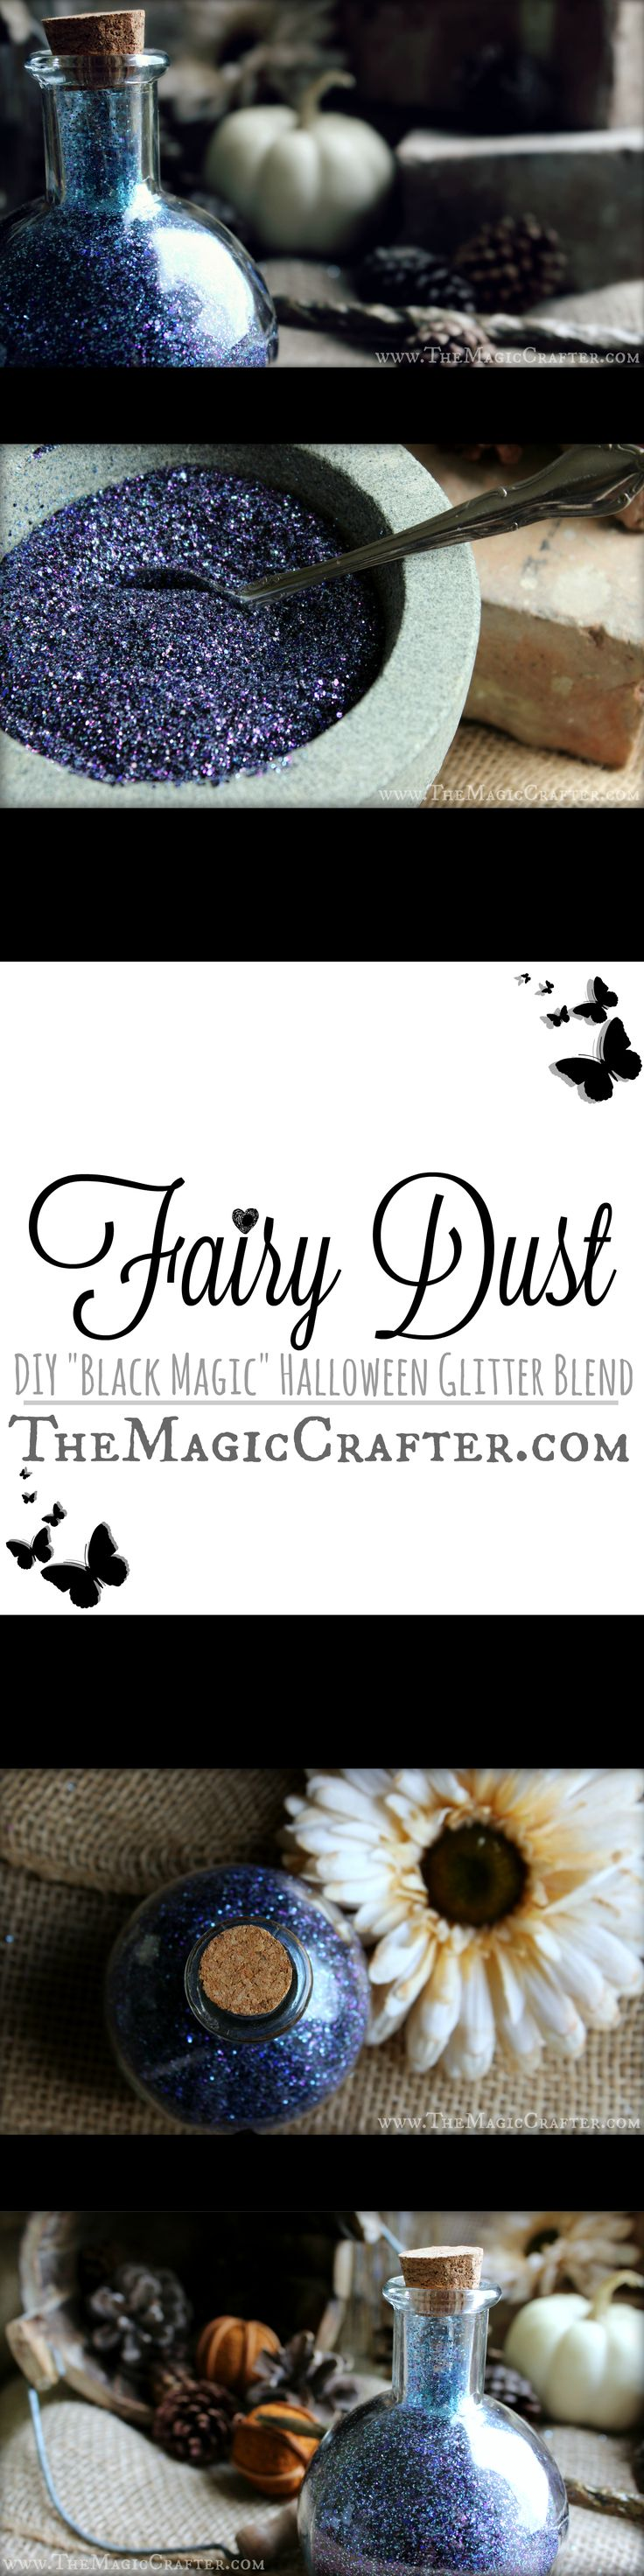 "Magic Potions ♥ DIY ♥ How to Make Fairy Dust ♥ Halloween Crafts Tutorial ♥ ""Black Magic"" Spooky Glitter Blend for costume & home party props #DIYHalloween #Fairydust #PixieDust"